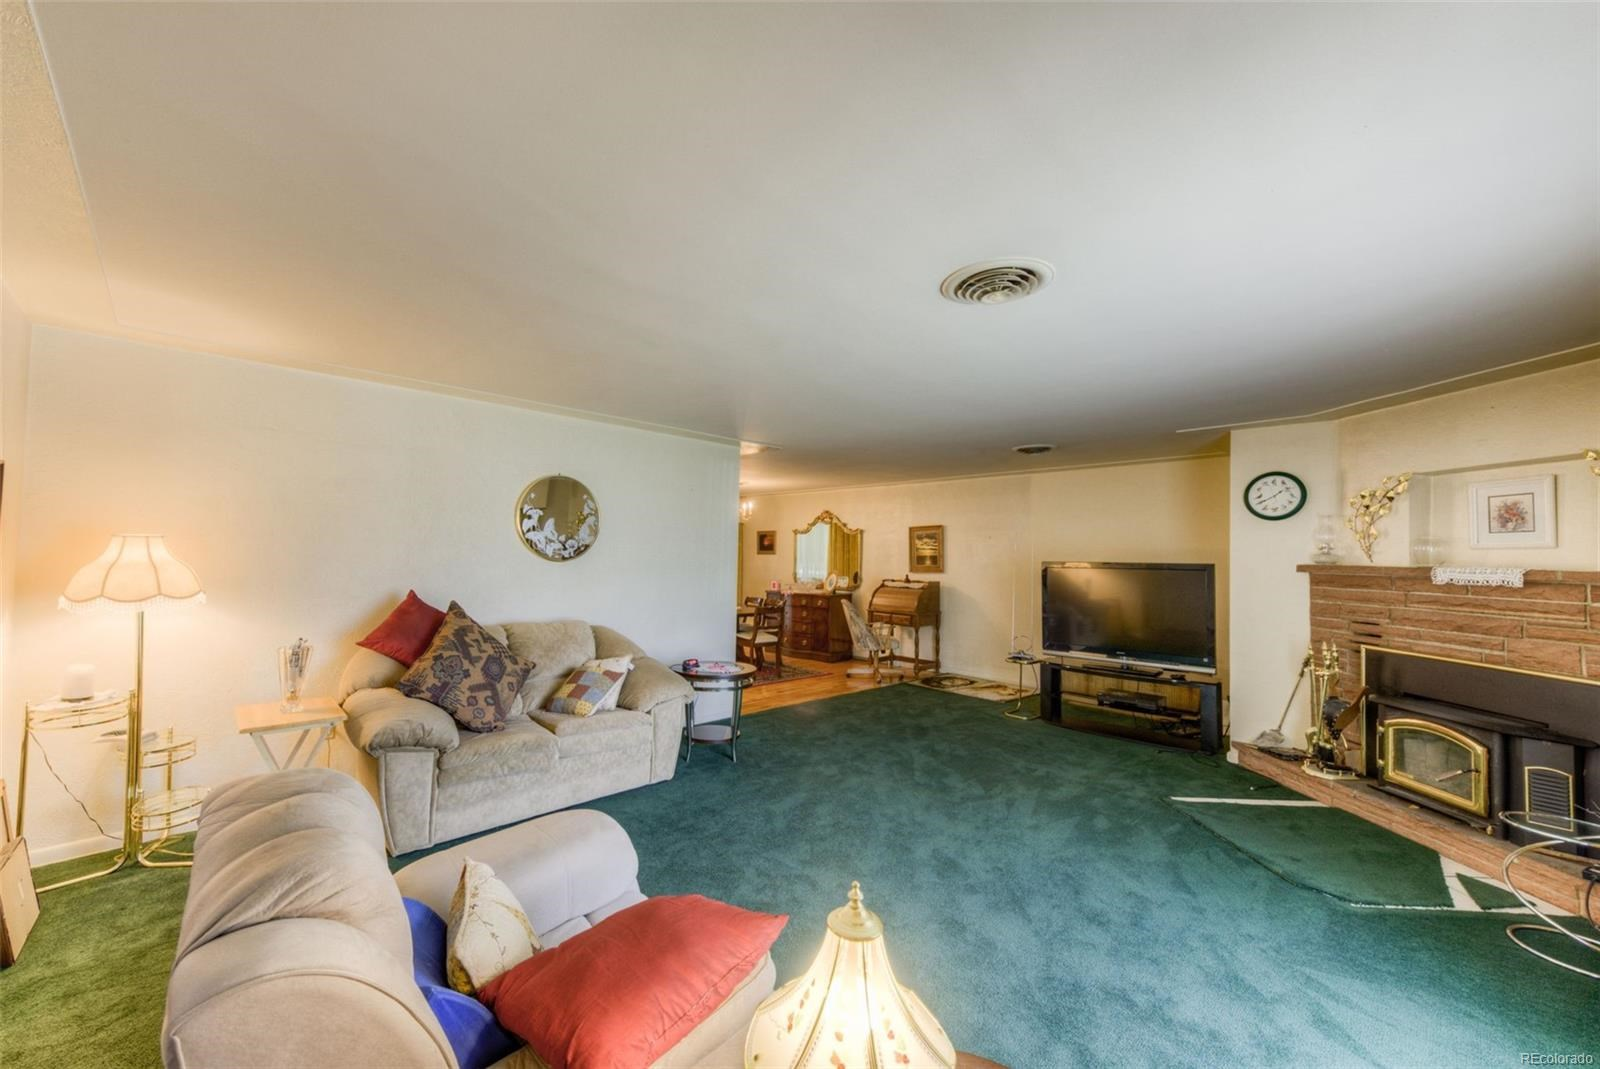 MLS# 5735873 - 13 - 45 S Brentwood Street, Lakewood, CO 80226